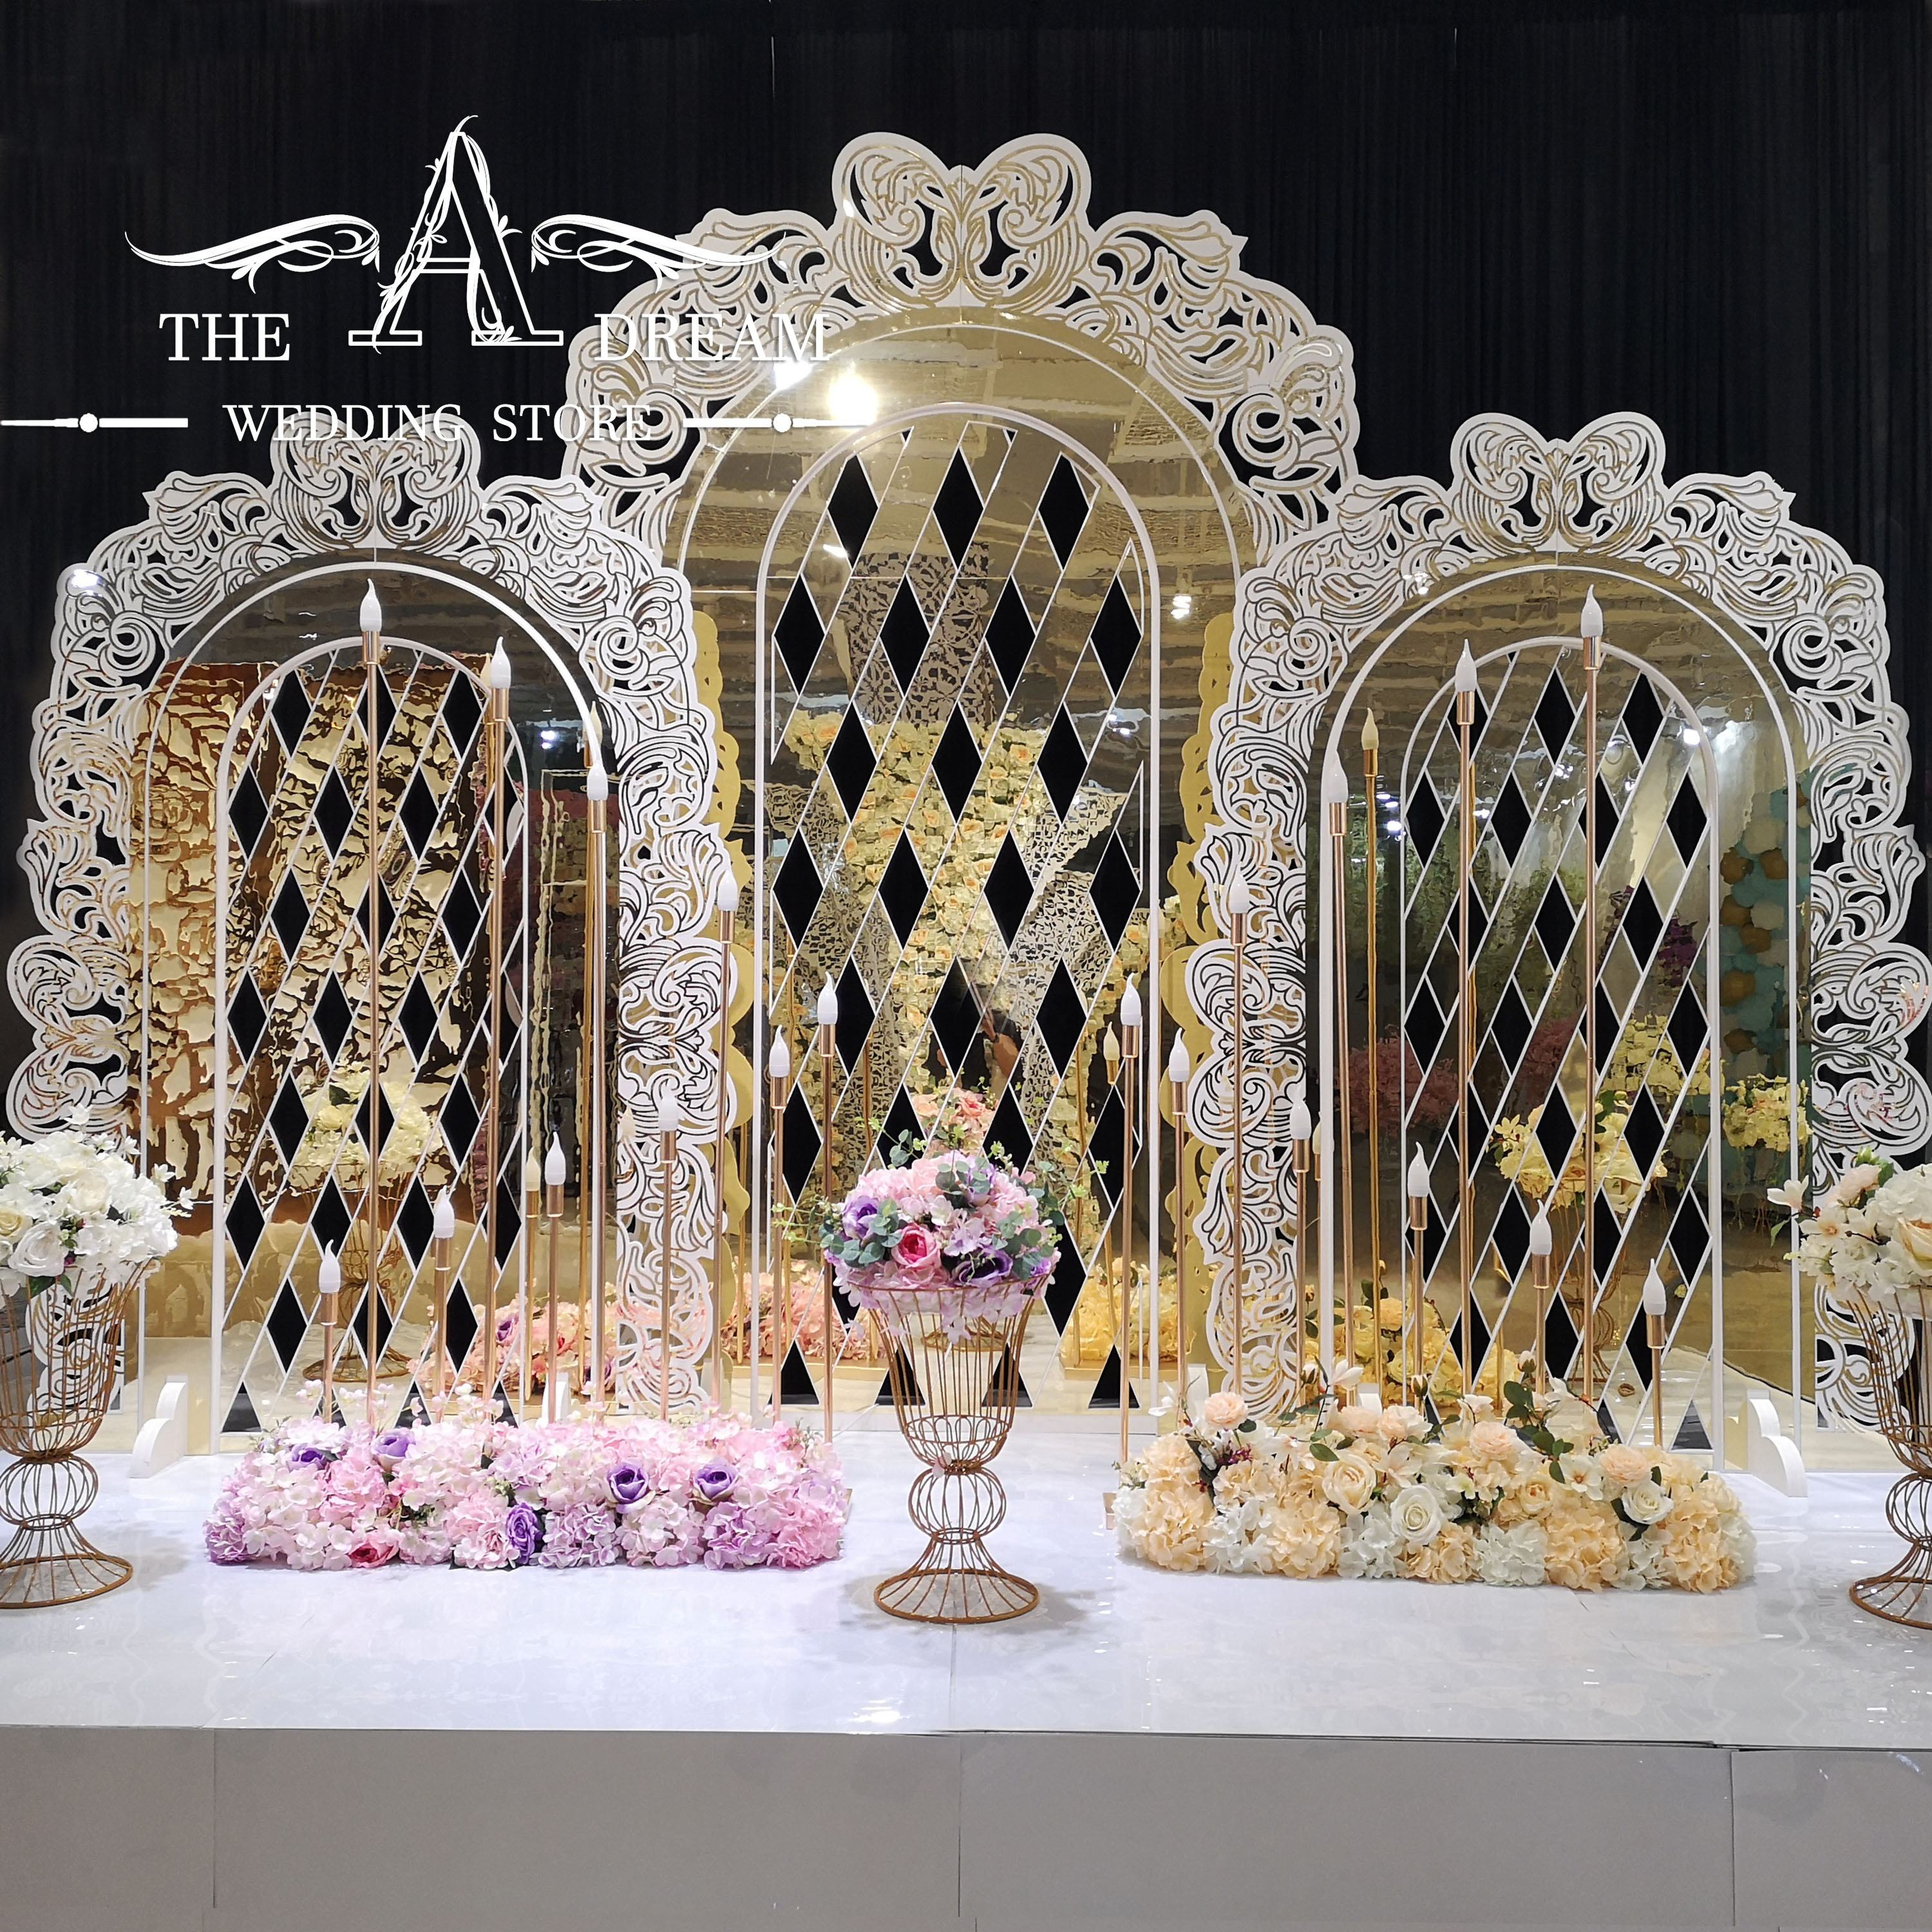 Luxury Wedding Backdrop New Design Rose Removable Decor Panels Golden Wedding Decoration From The A Dream Wedding Store